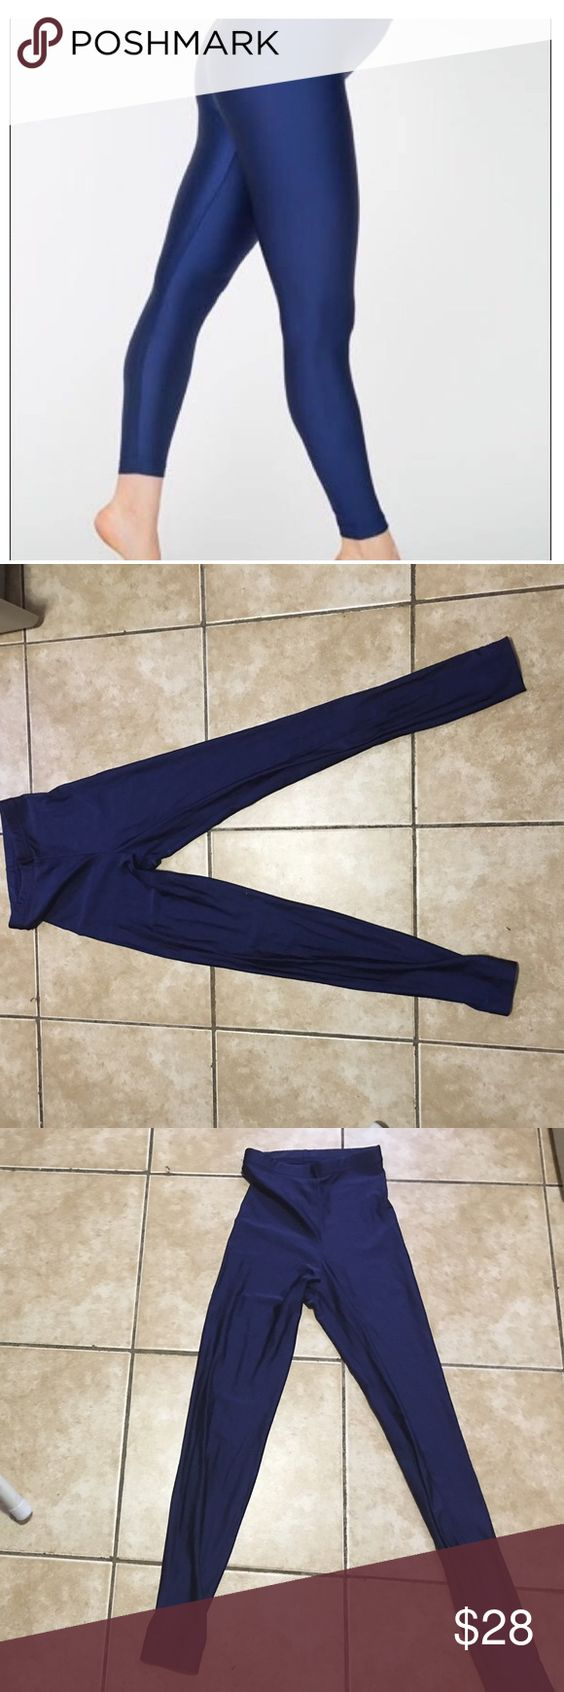 American Apparel Leggings Very comfortable worn a couple of times can fit various sizes American Apparel Pants Leggings